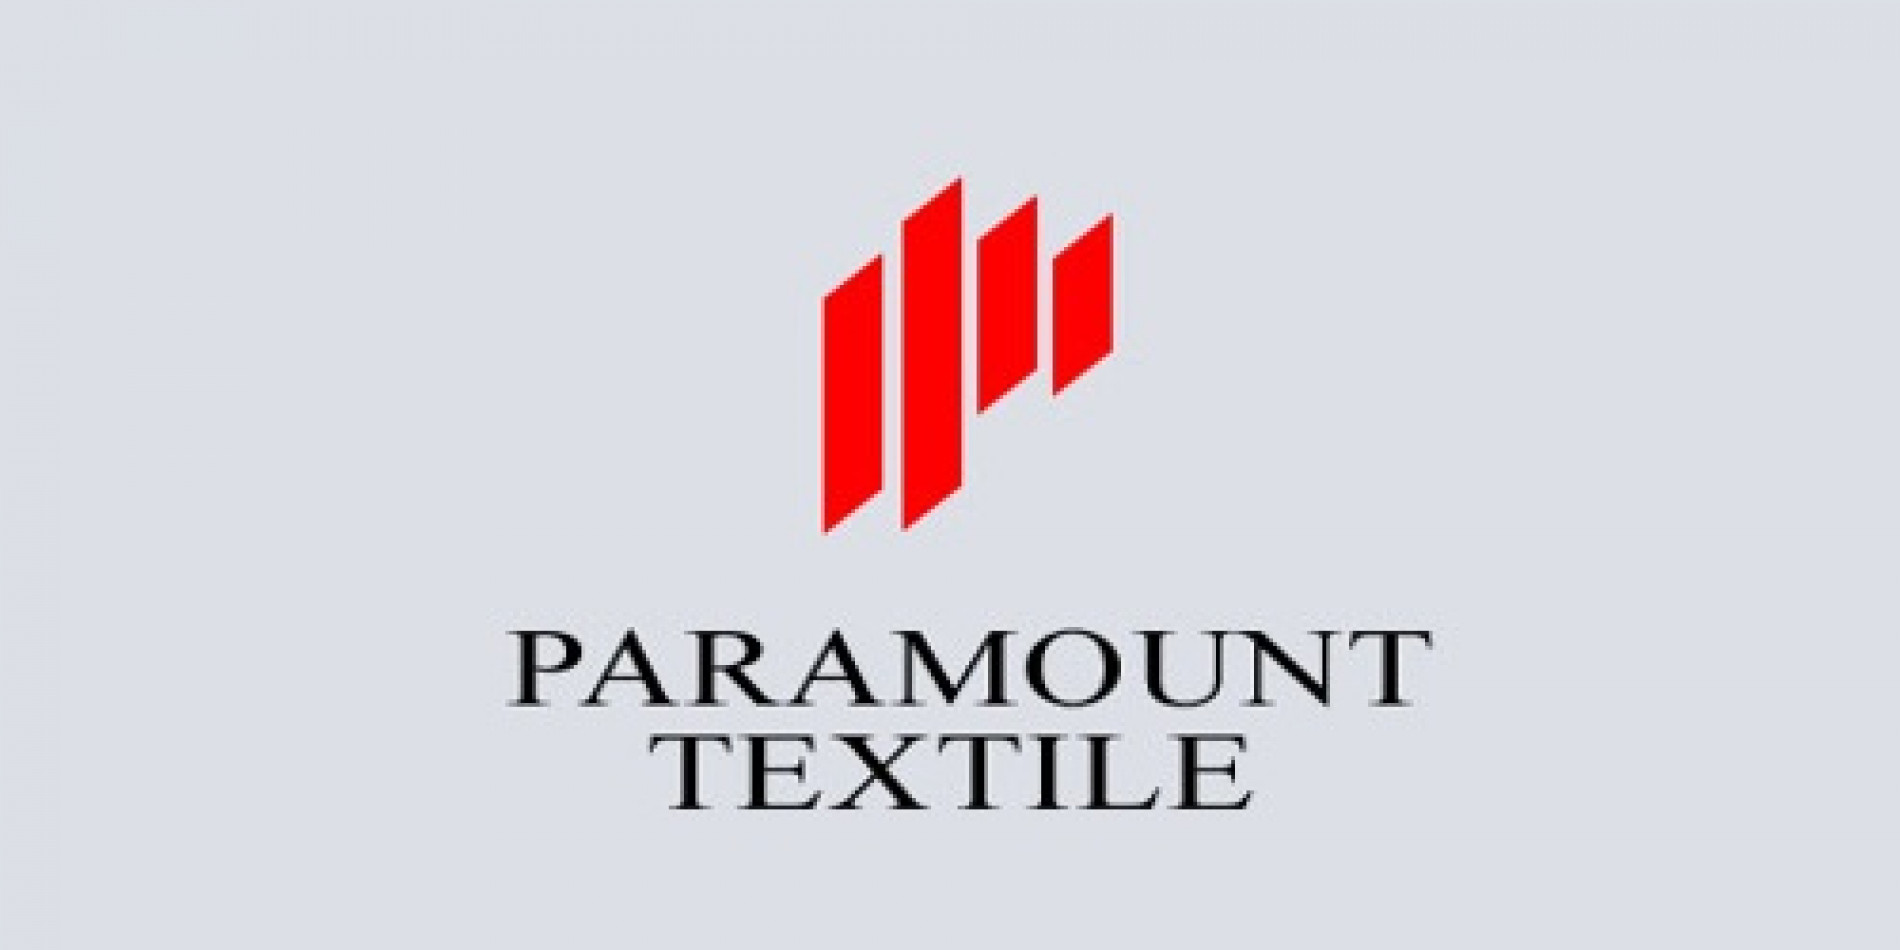 Paramount Textile Limited